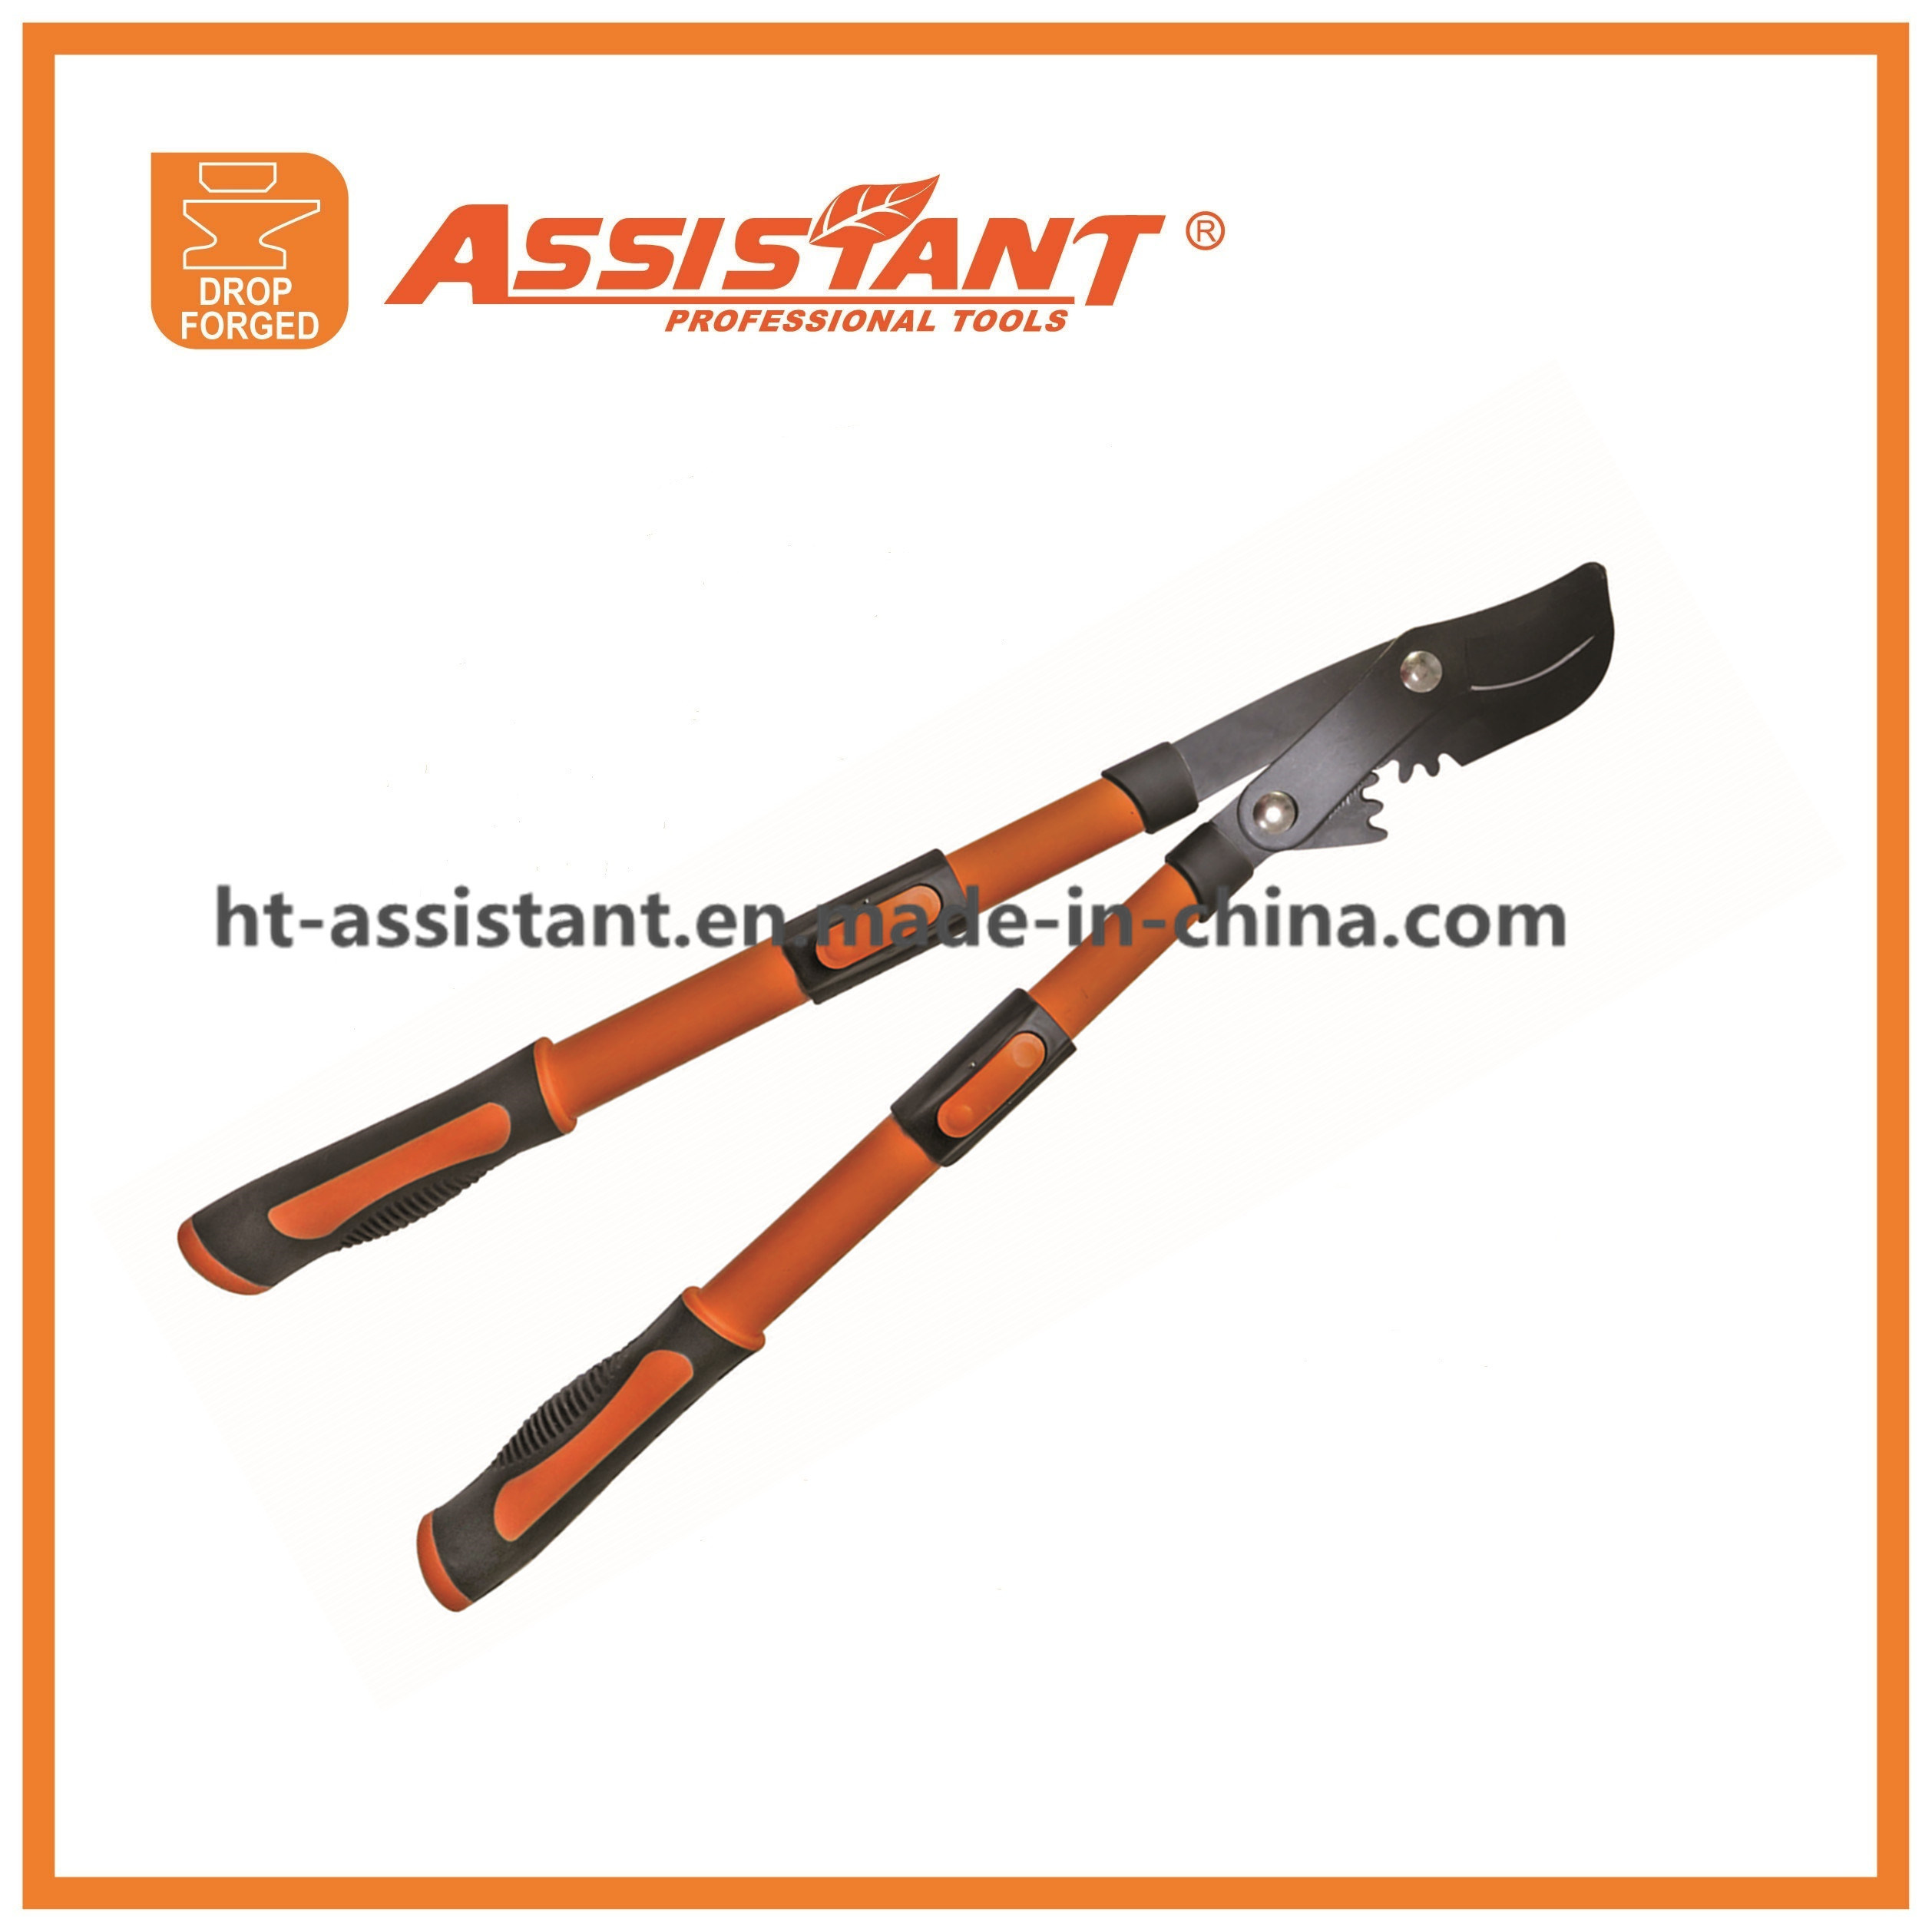 Extendable Lopping Shears Heavy Duty Drop Forged Blade Pruning Lopper